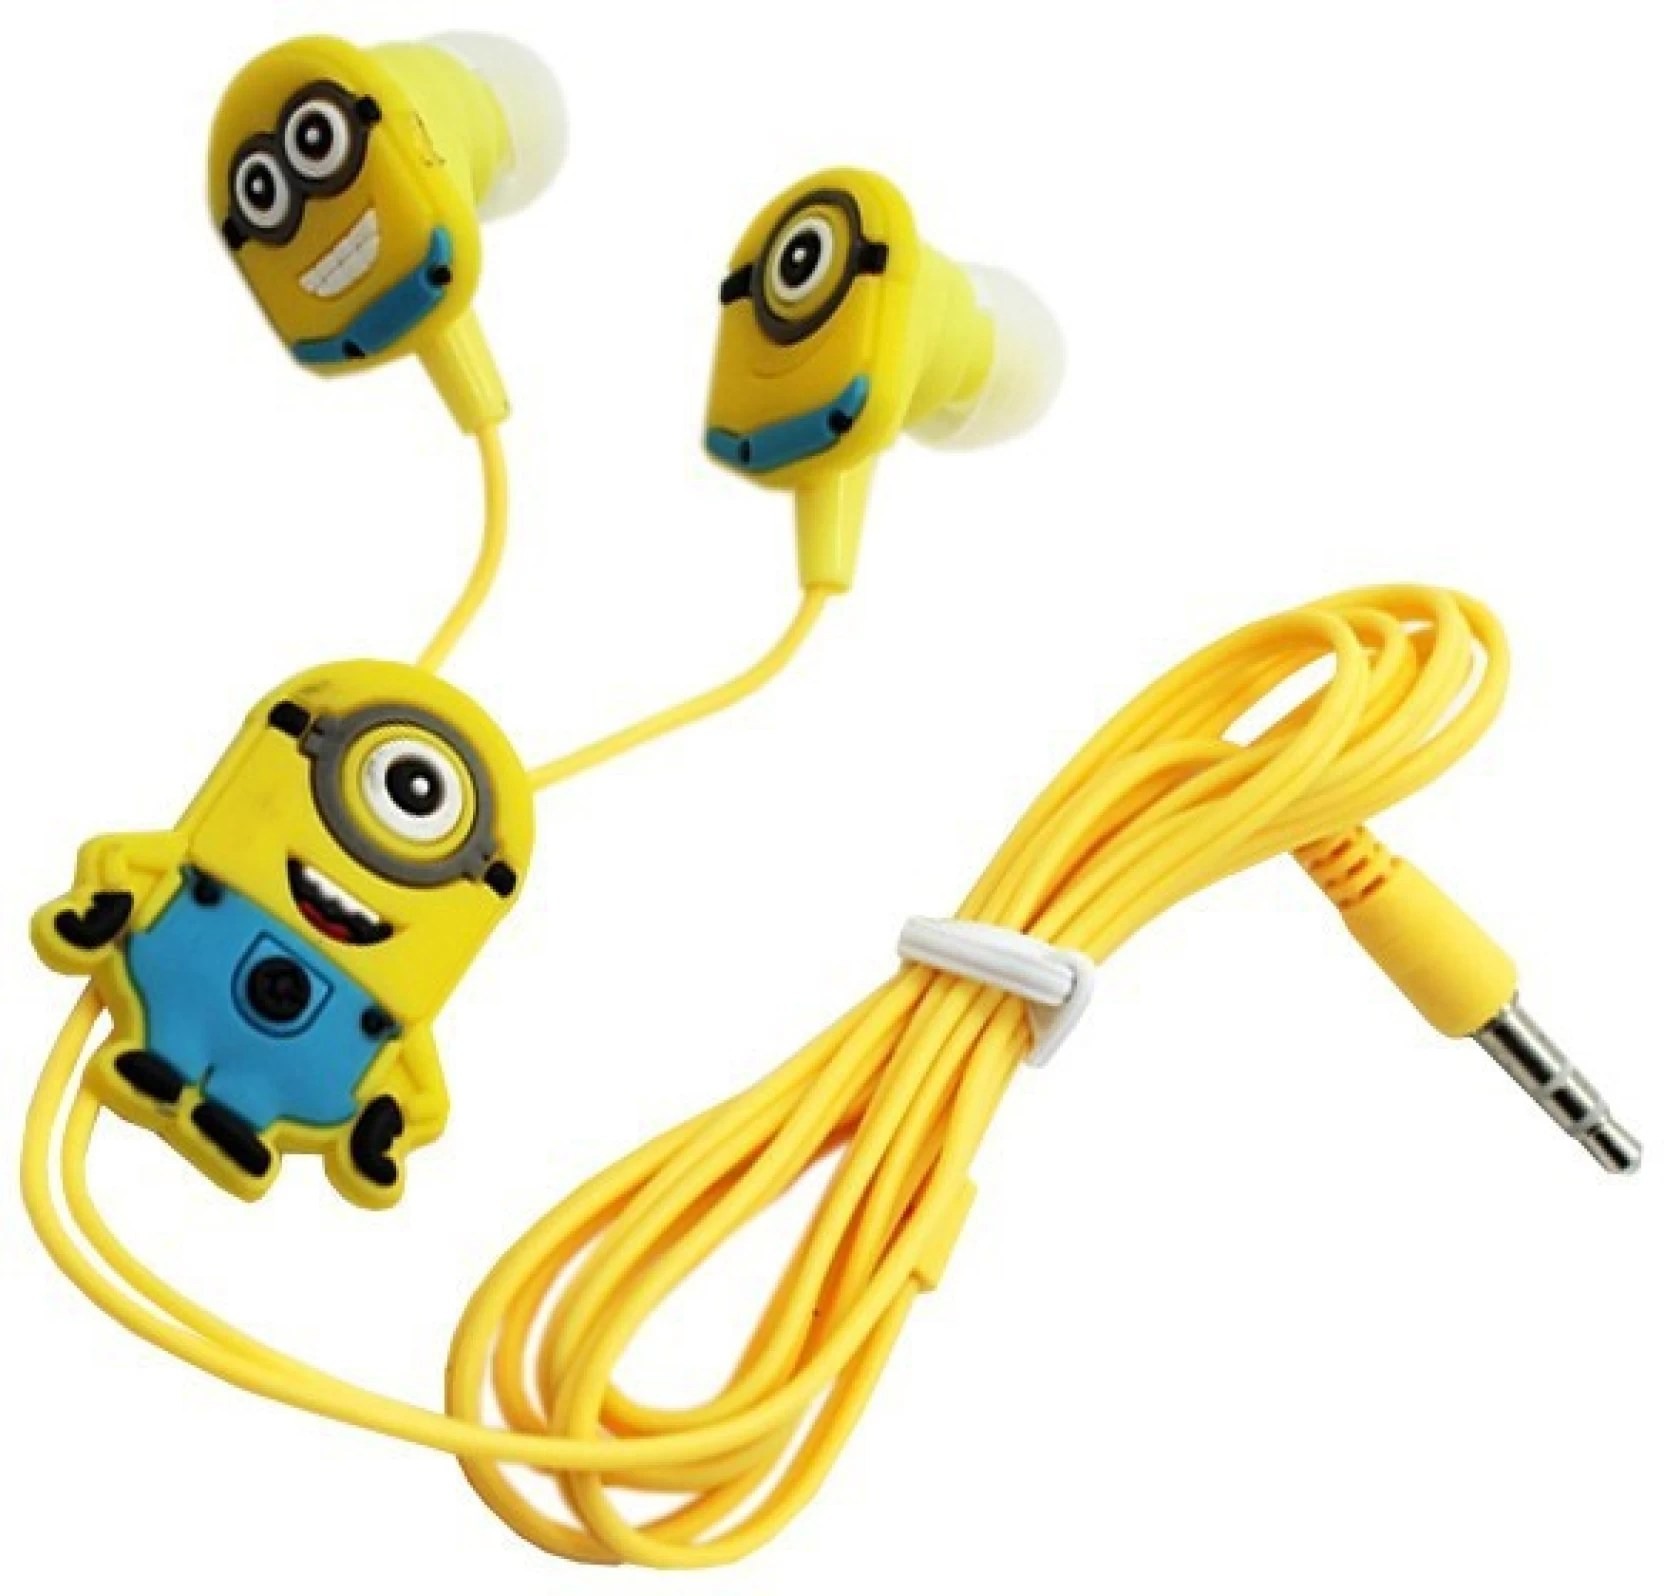 hight resolution of justchhapo minions cartoon in ear wired 3 5 mm earphone for mp3 mp4 mobile phone with earplug cover wired headset with mic yellow in the ear